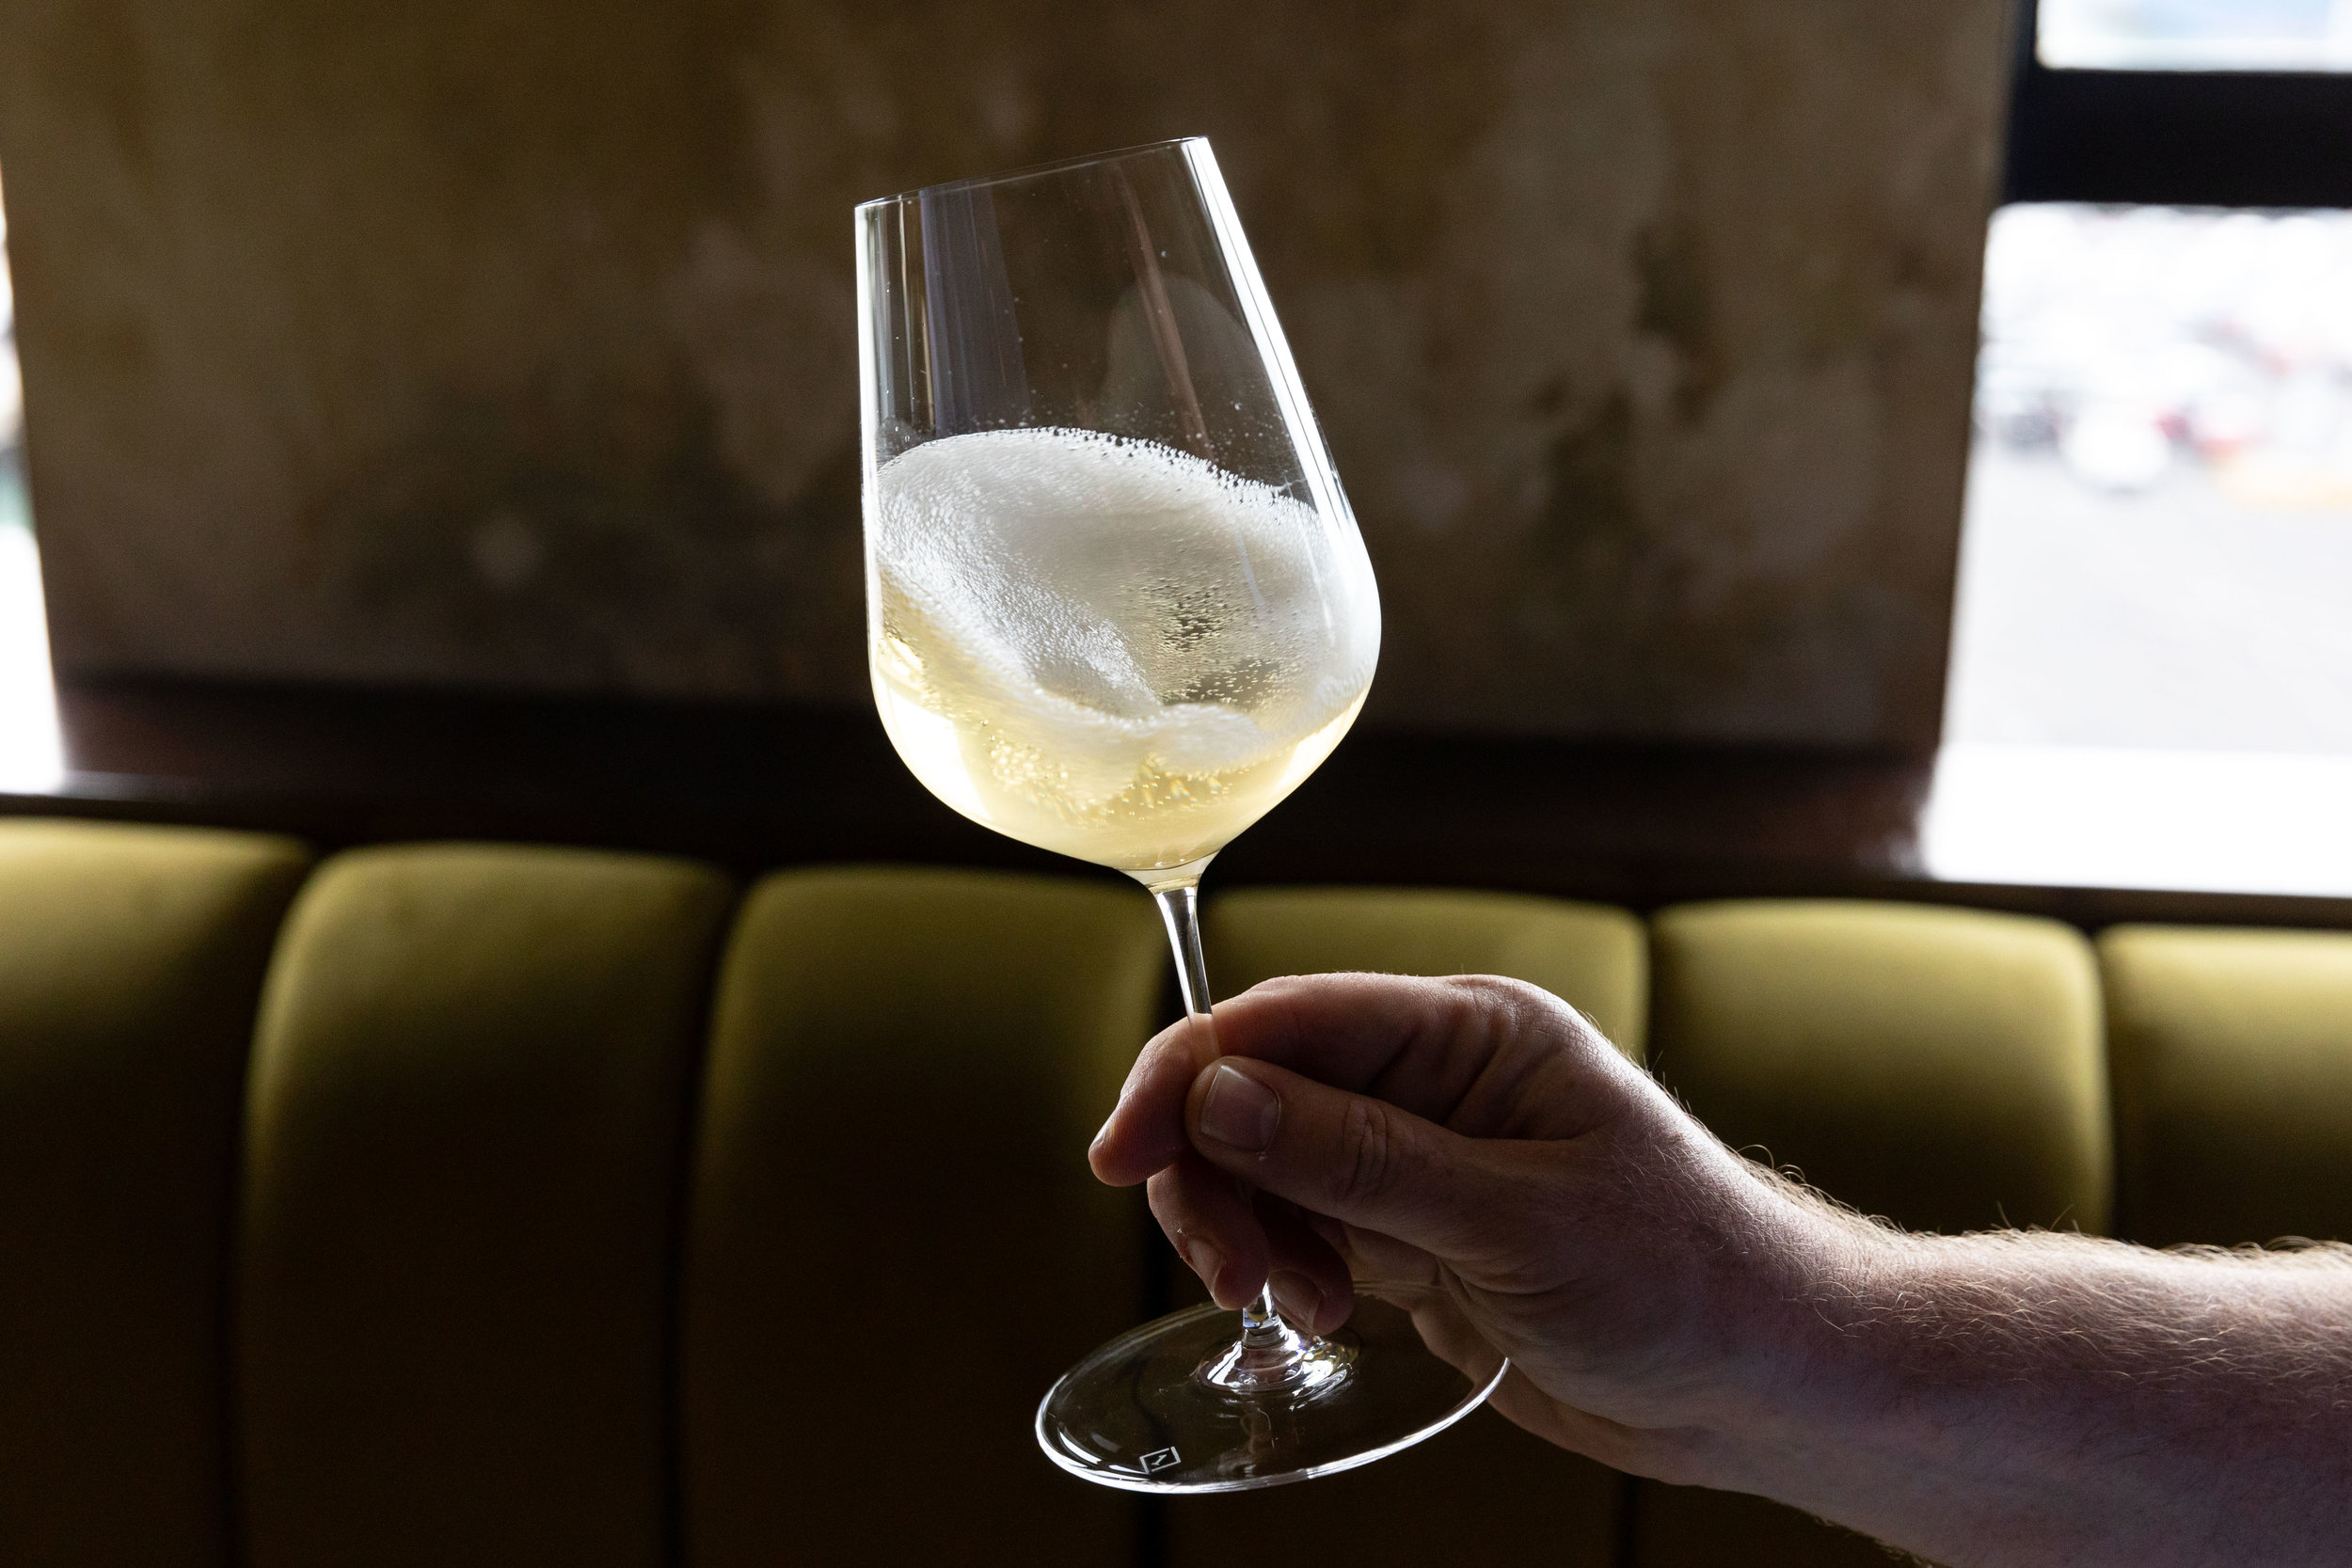 Champagne Masterclass - Enjoy and learn everything that makes makes Champagne the most celebrated wine region in the world.Think: Clean oyster shell, almond, lemon zest and peach.